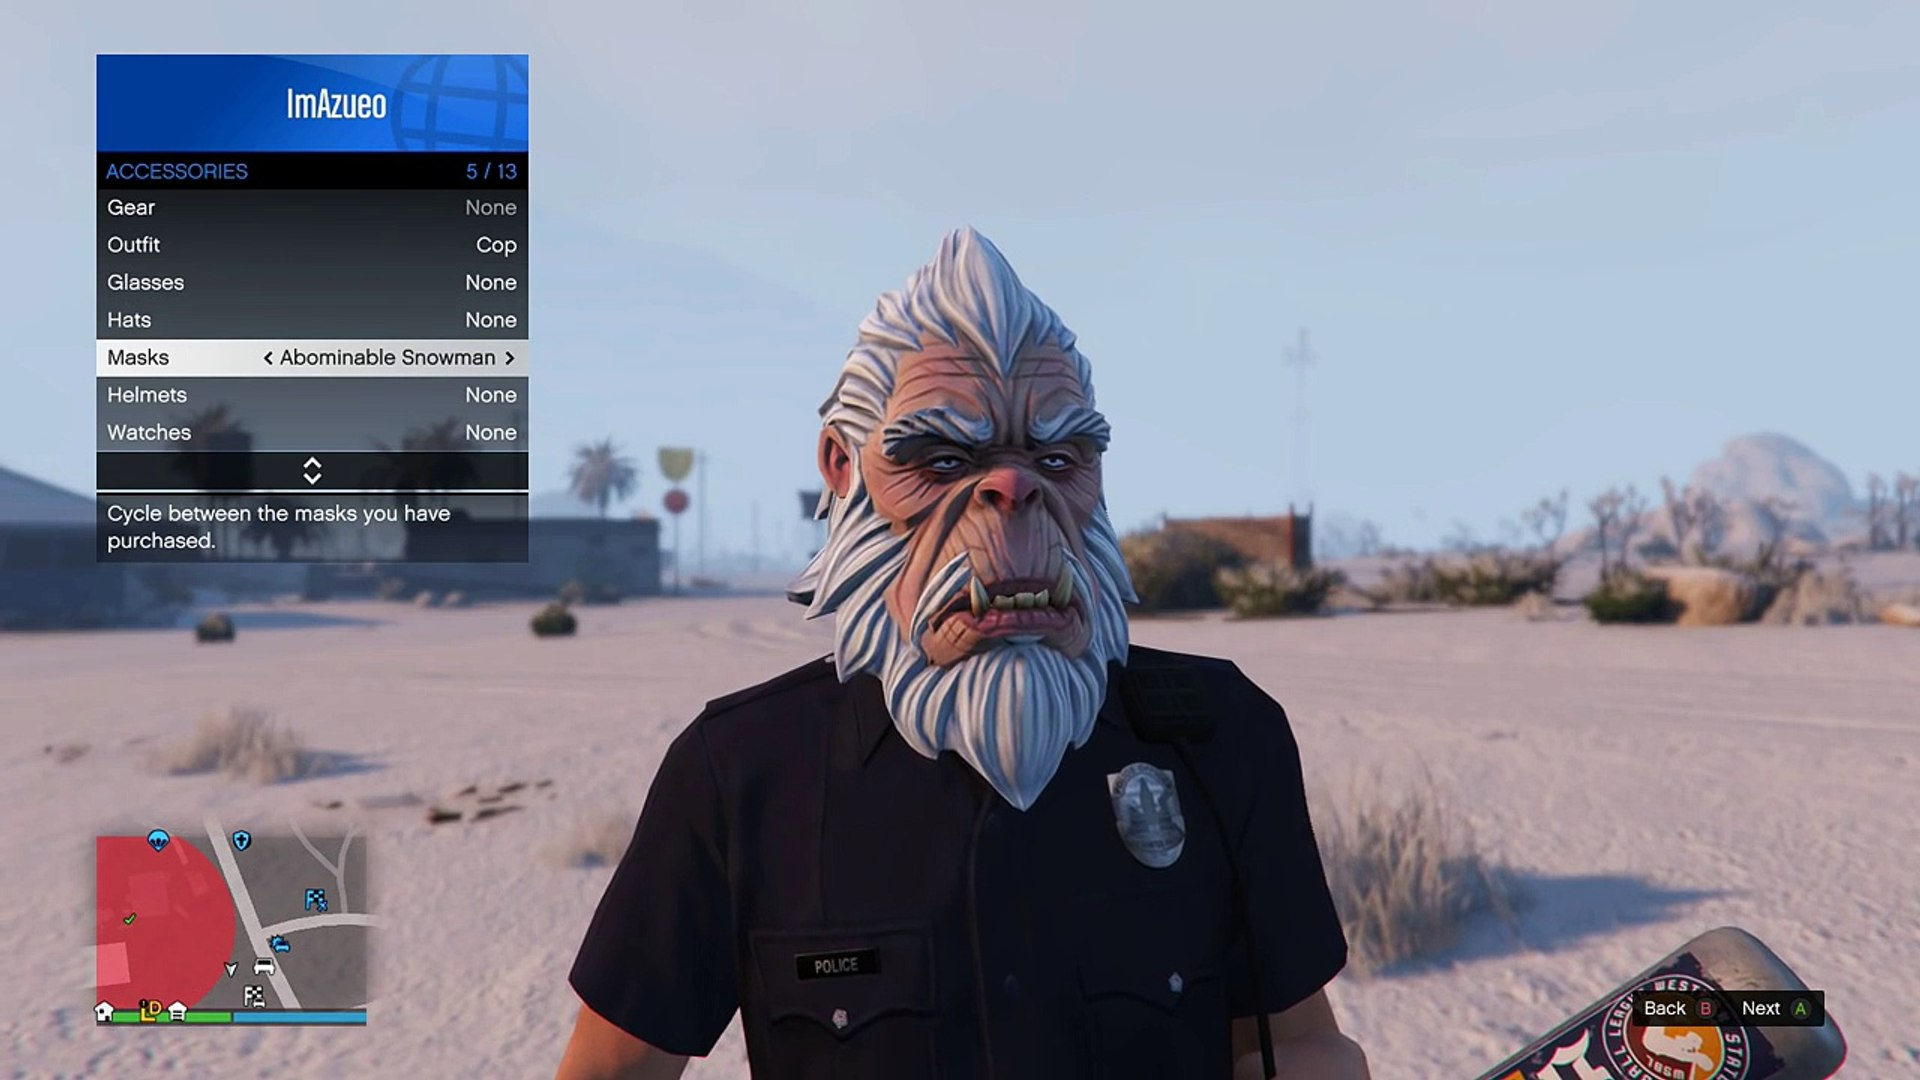 Gta 5 Online Christmas Masks.Gta 5 Online Christmas Gifts Abominable Snowman Mask Exclusive Items More Gta 5 Christmas